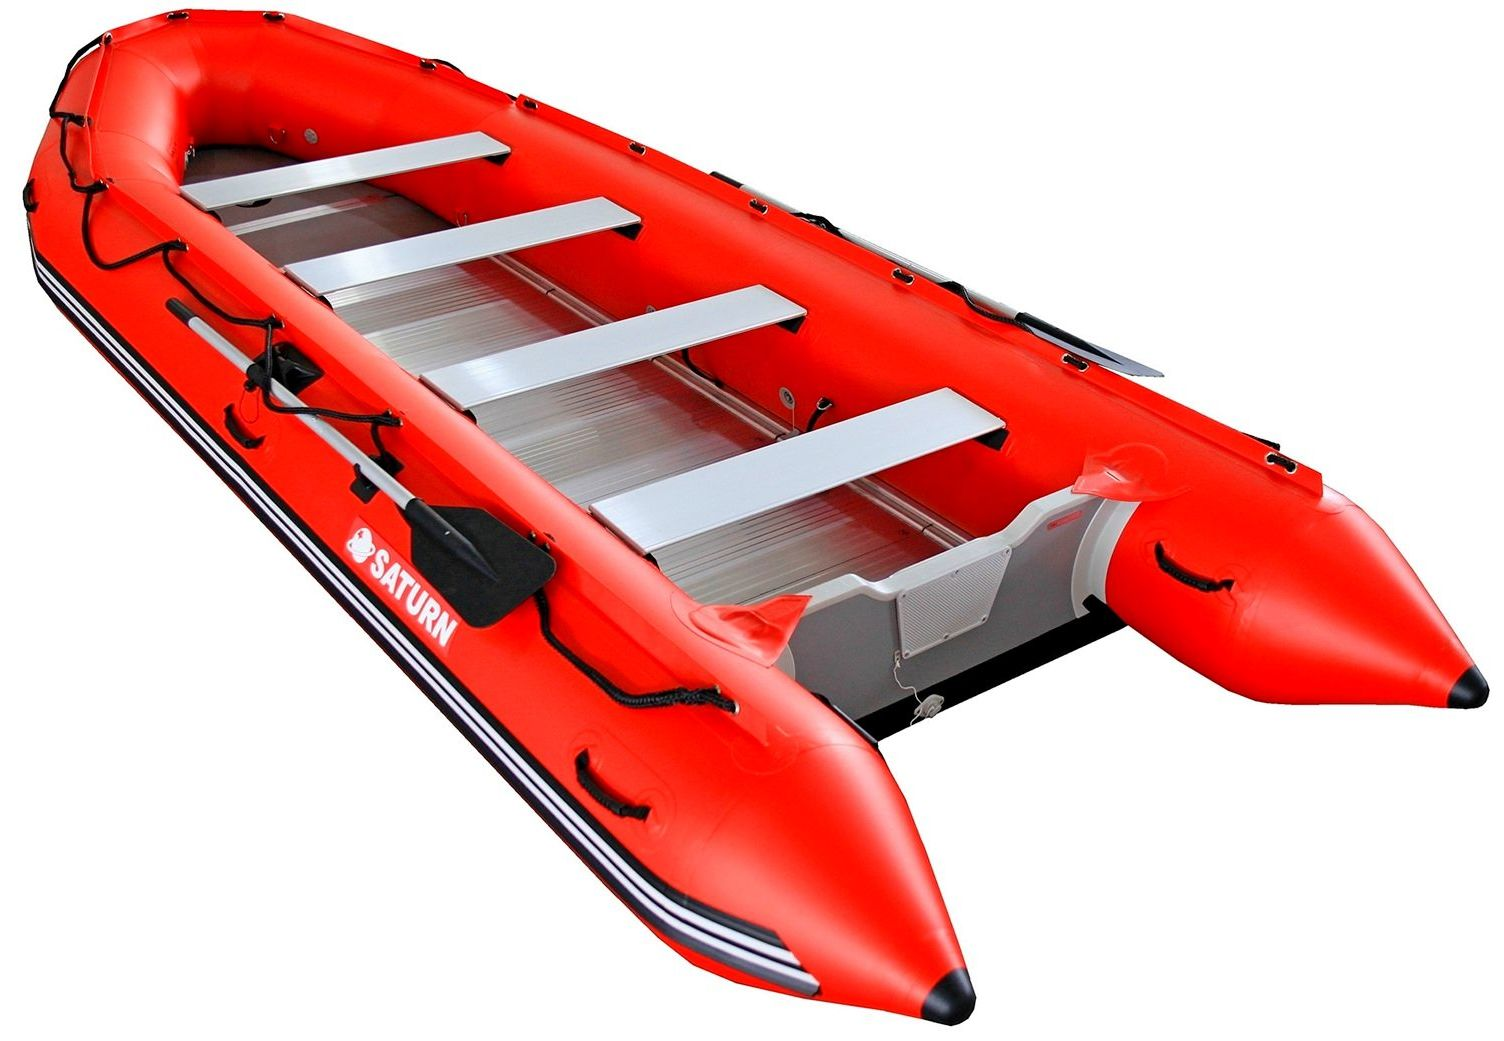 16' Saturn SD487 Inflatable Boat with Aluminum Sectional Floor